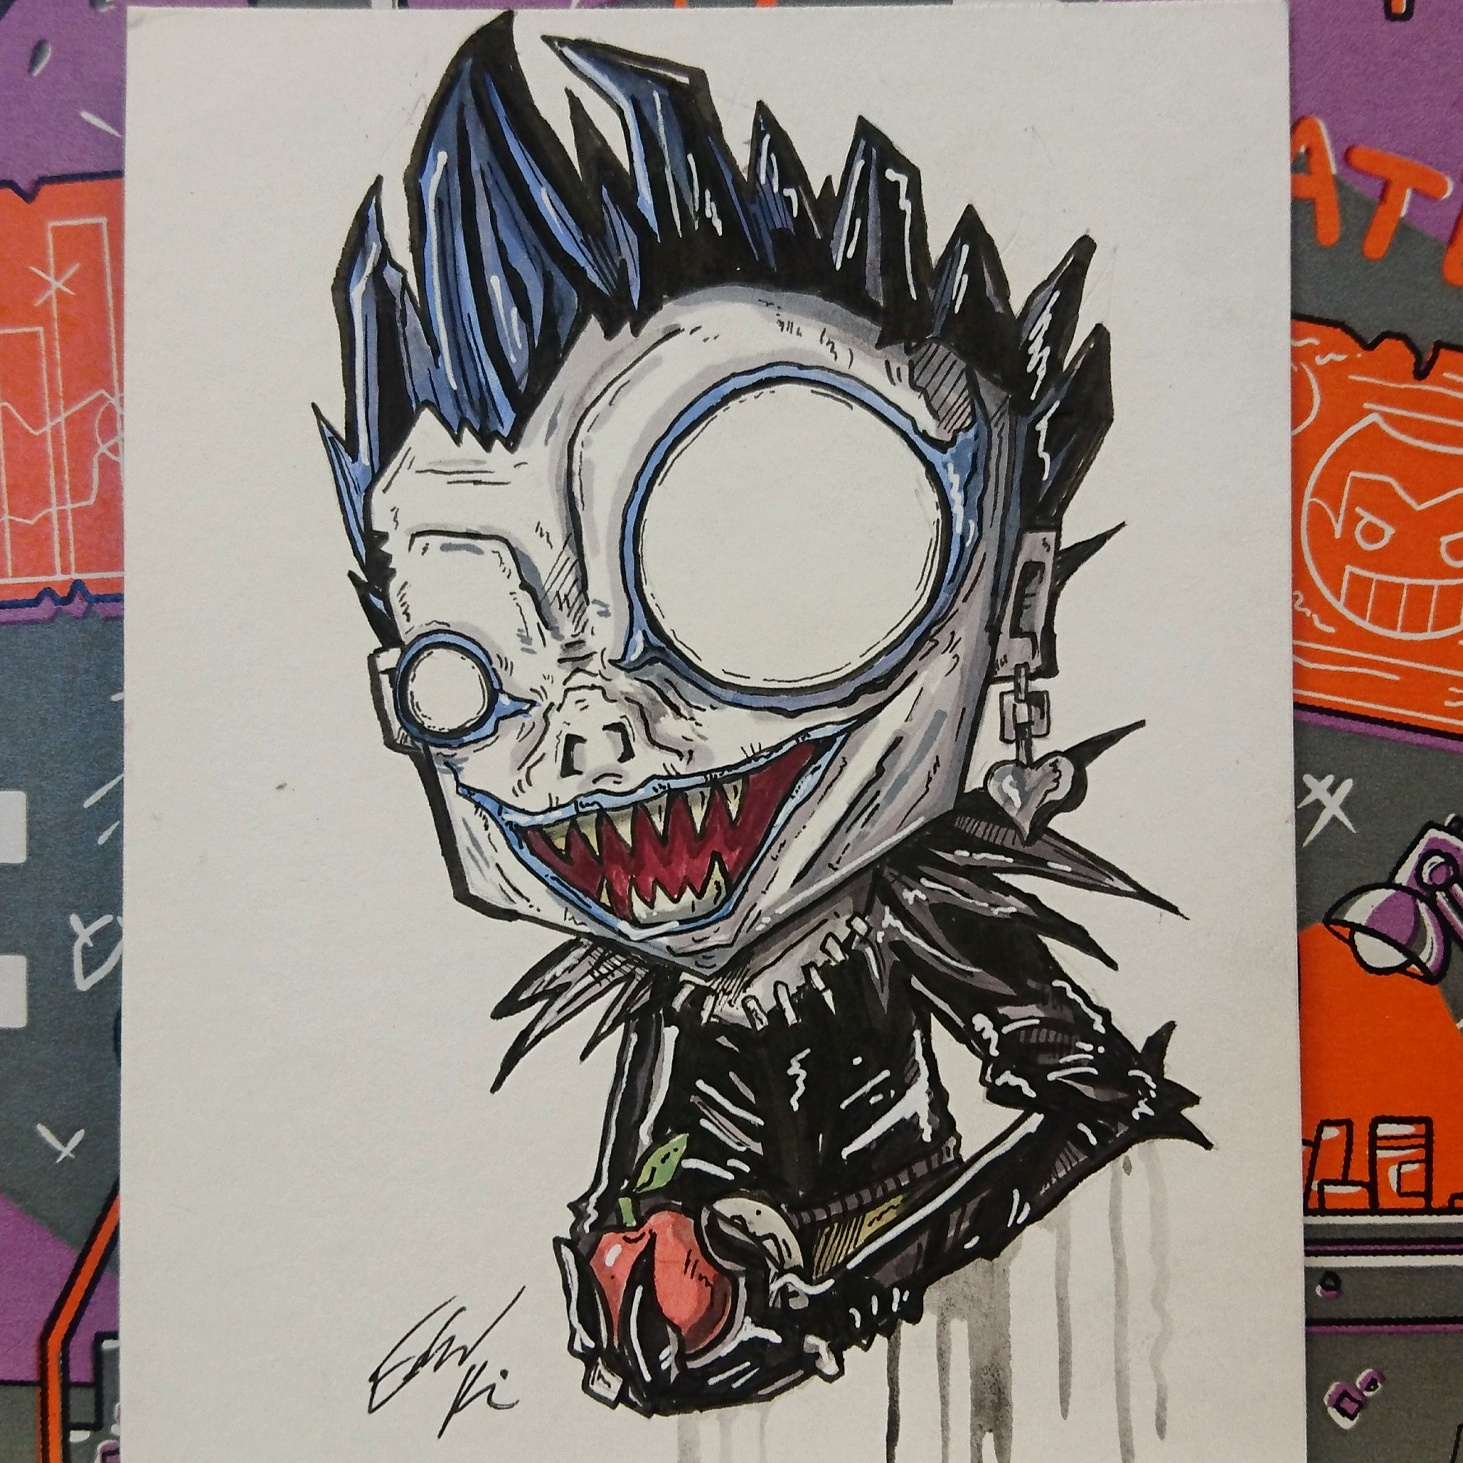 bed6717f1a1 Ryuk ( Death Note) · Taco Boy Designs · Online Store Powered by Storenvy